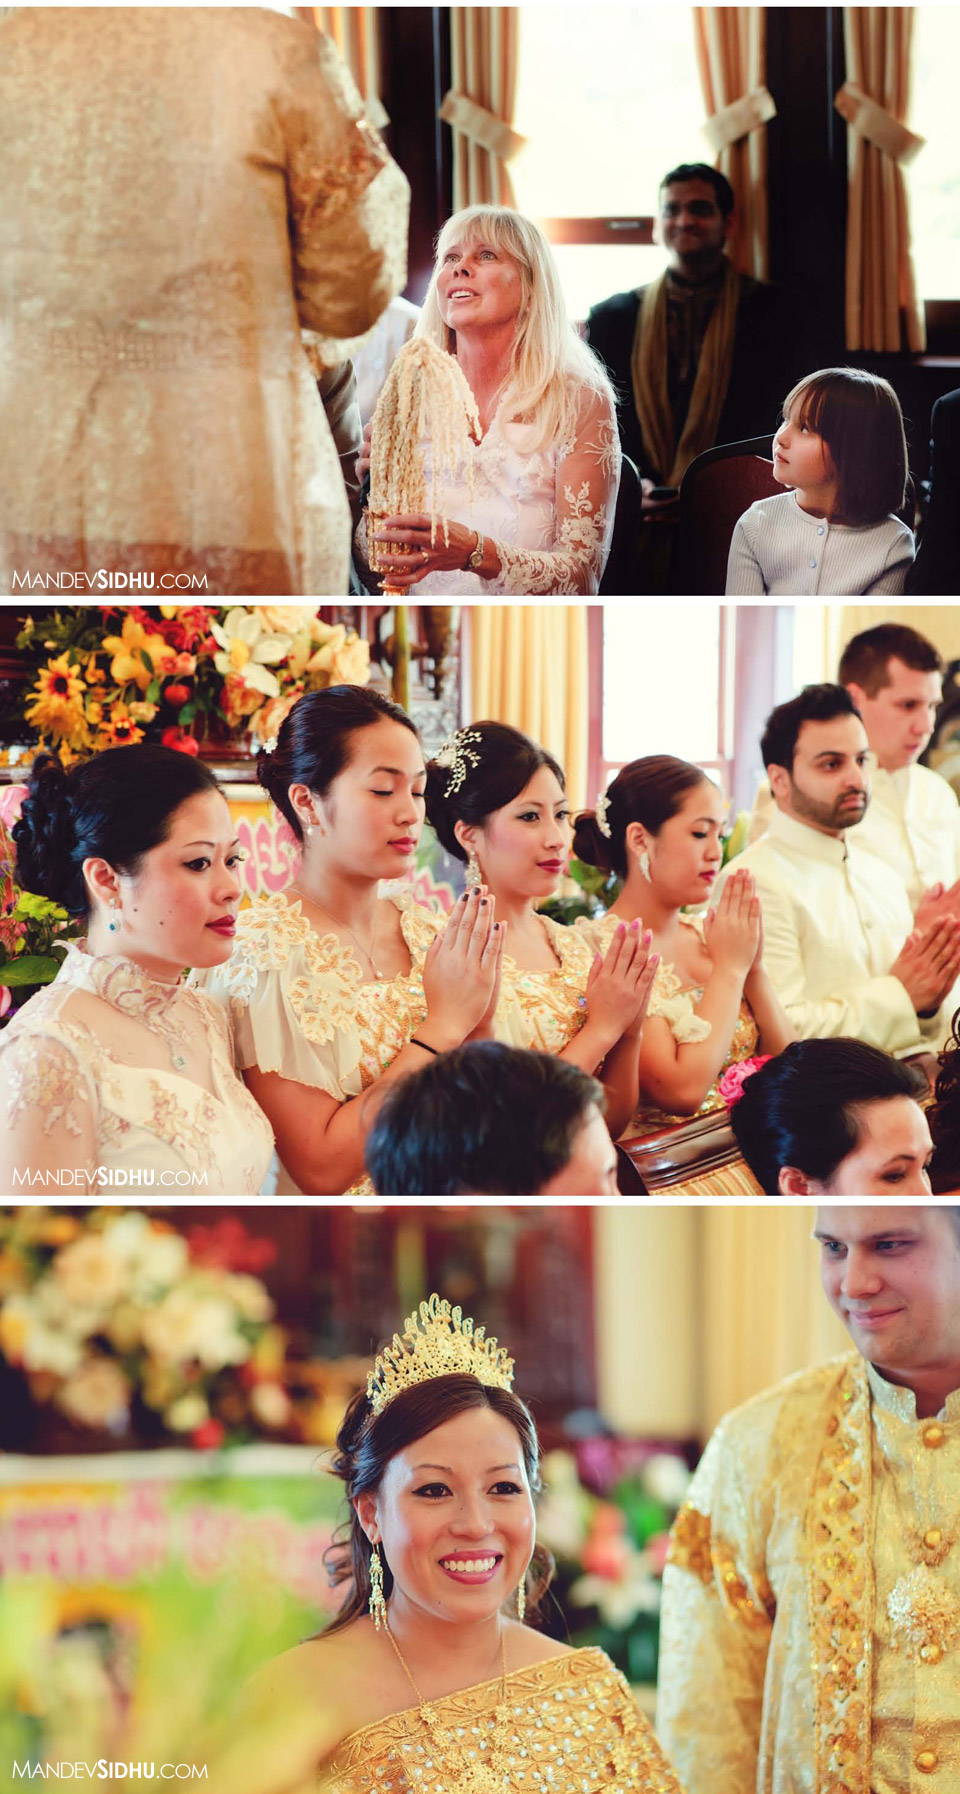 Parents and bridesmaids at traditional Cambodian wedding